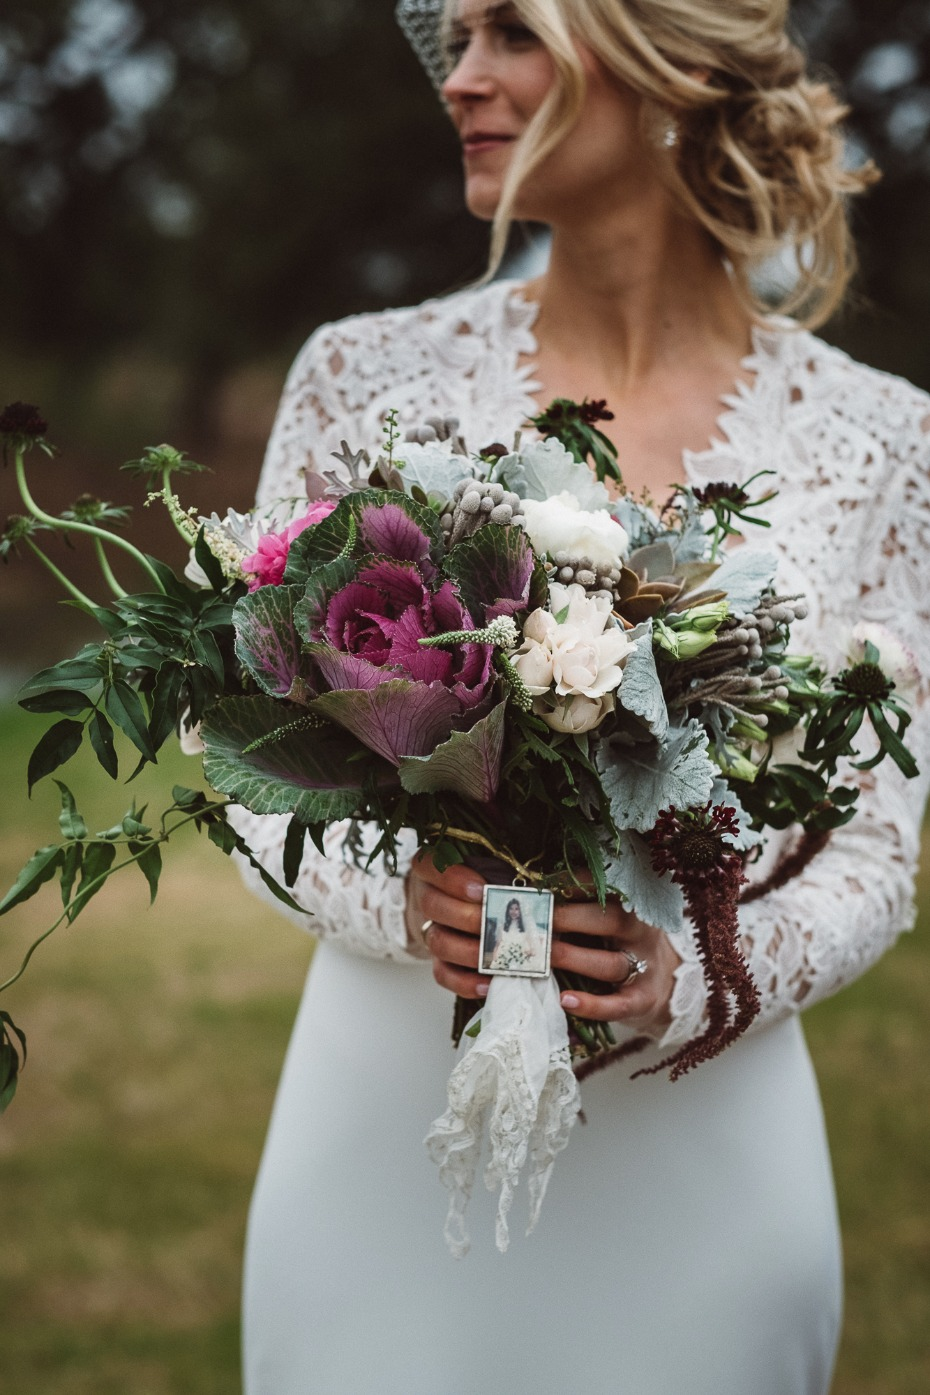 Gorgeous bouquet captured by Mercedes Morgan Photography